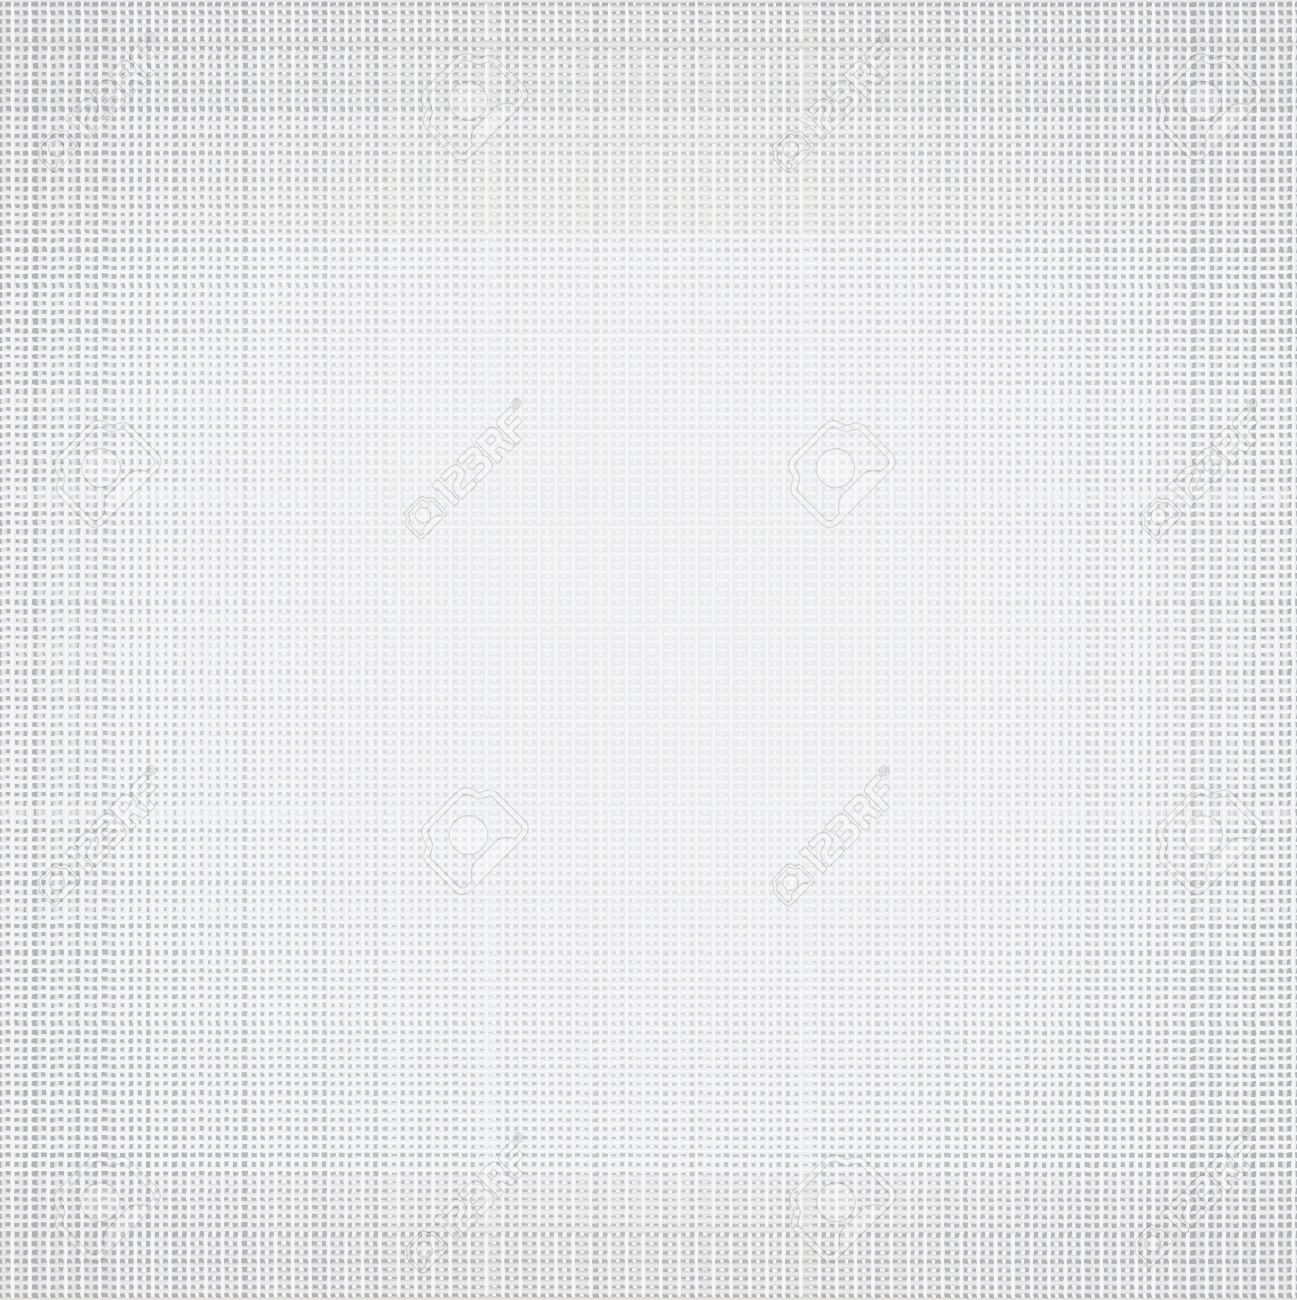 White Pfabric Textured Seamless Background Abstract Texture